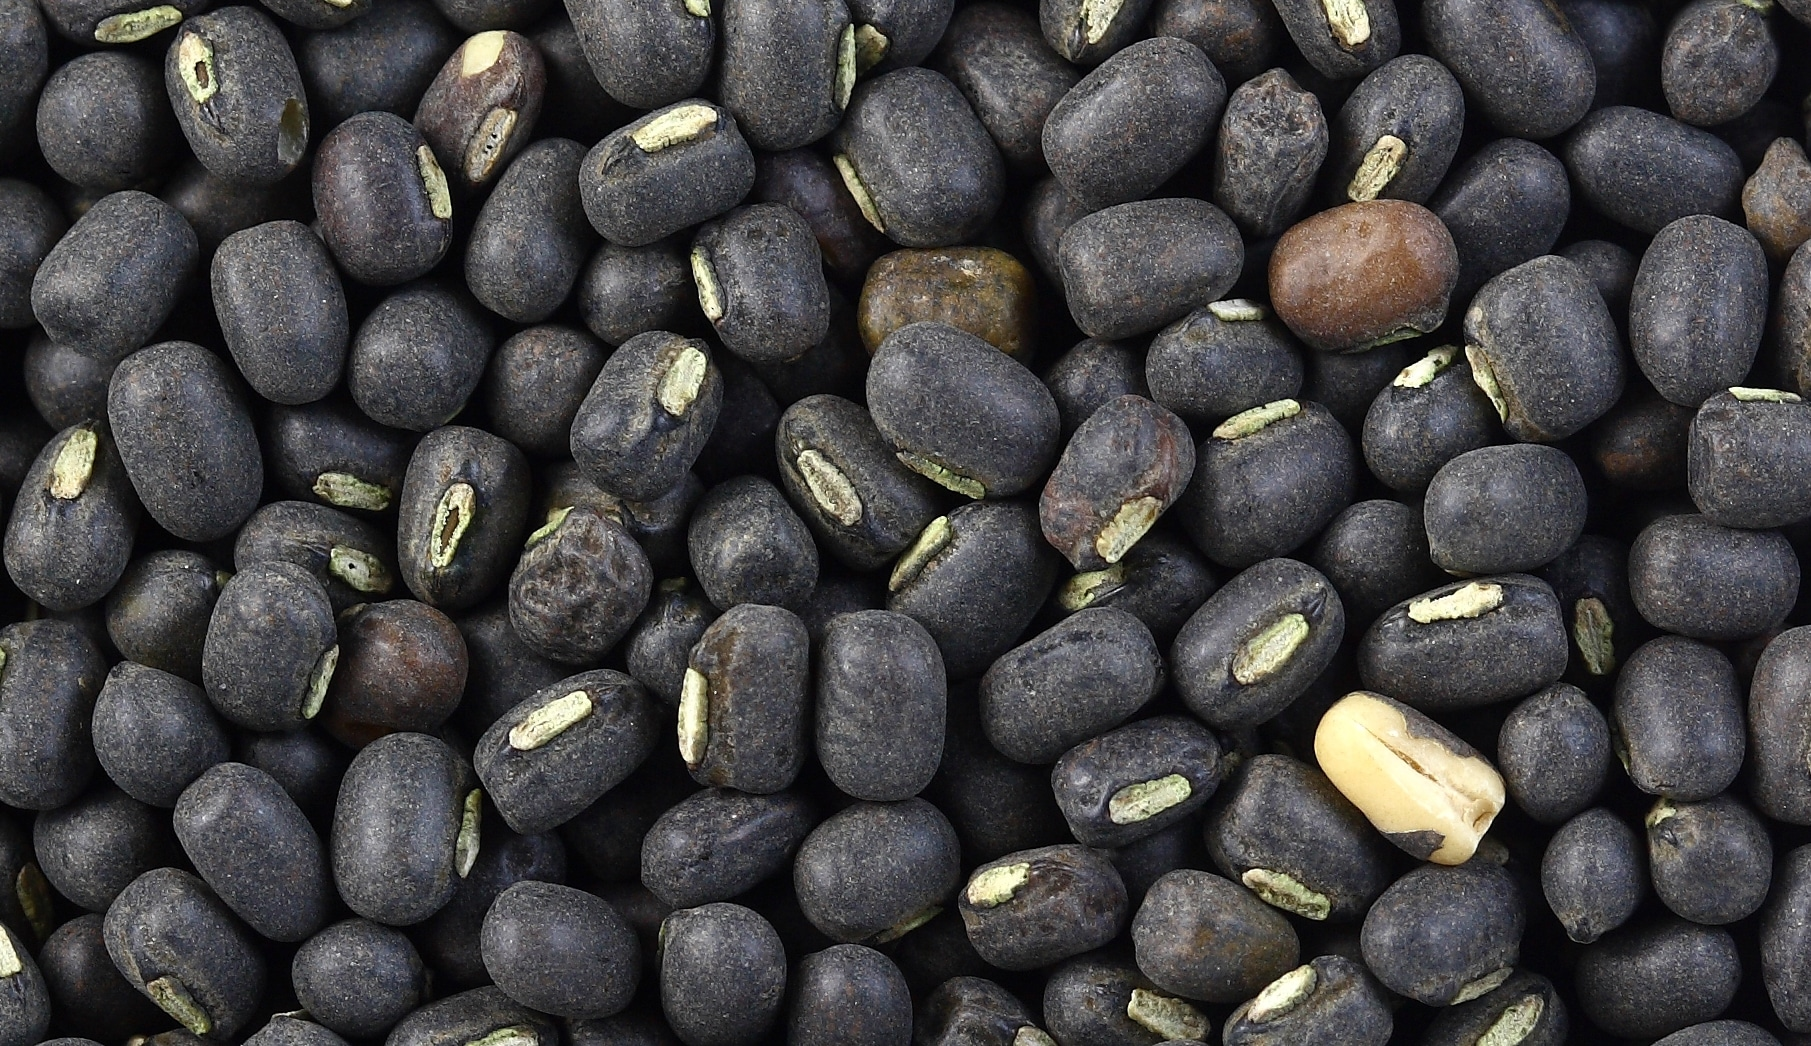 Black Gram Cultivation Urad Dal Guide Agri Farming